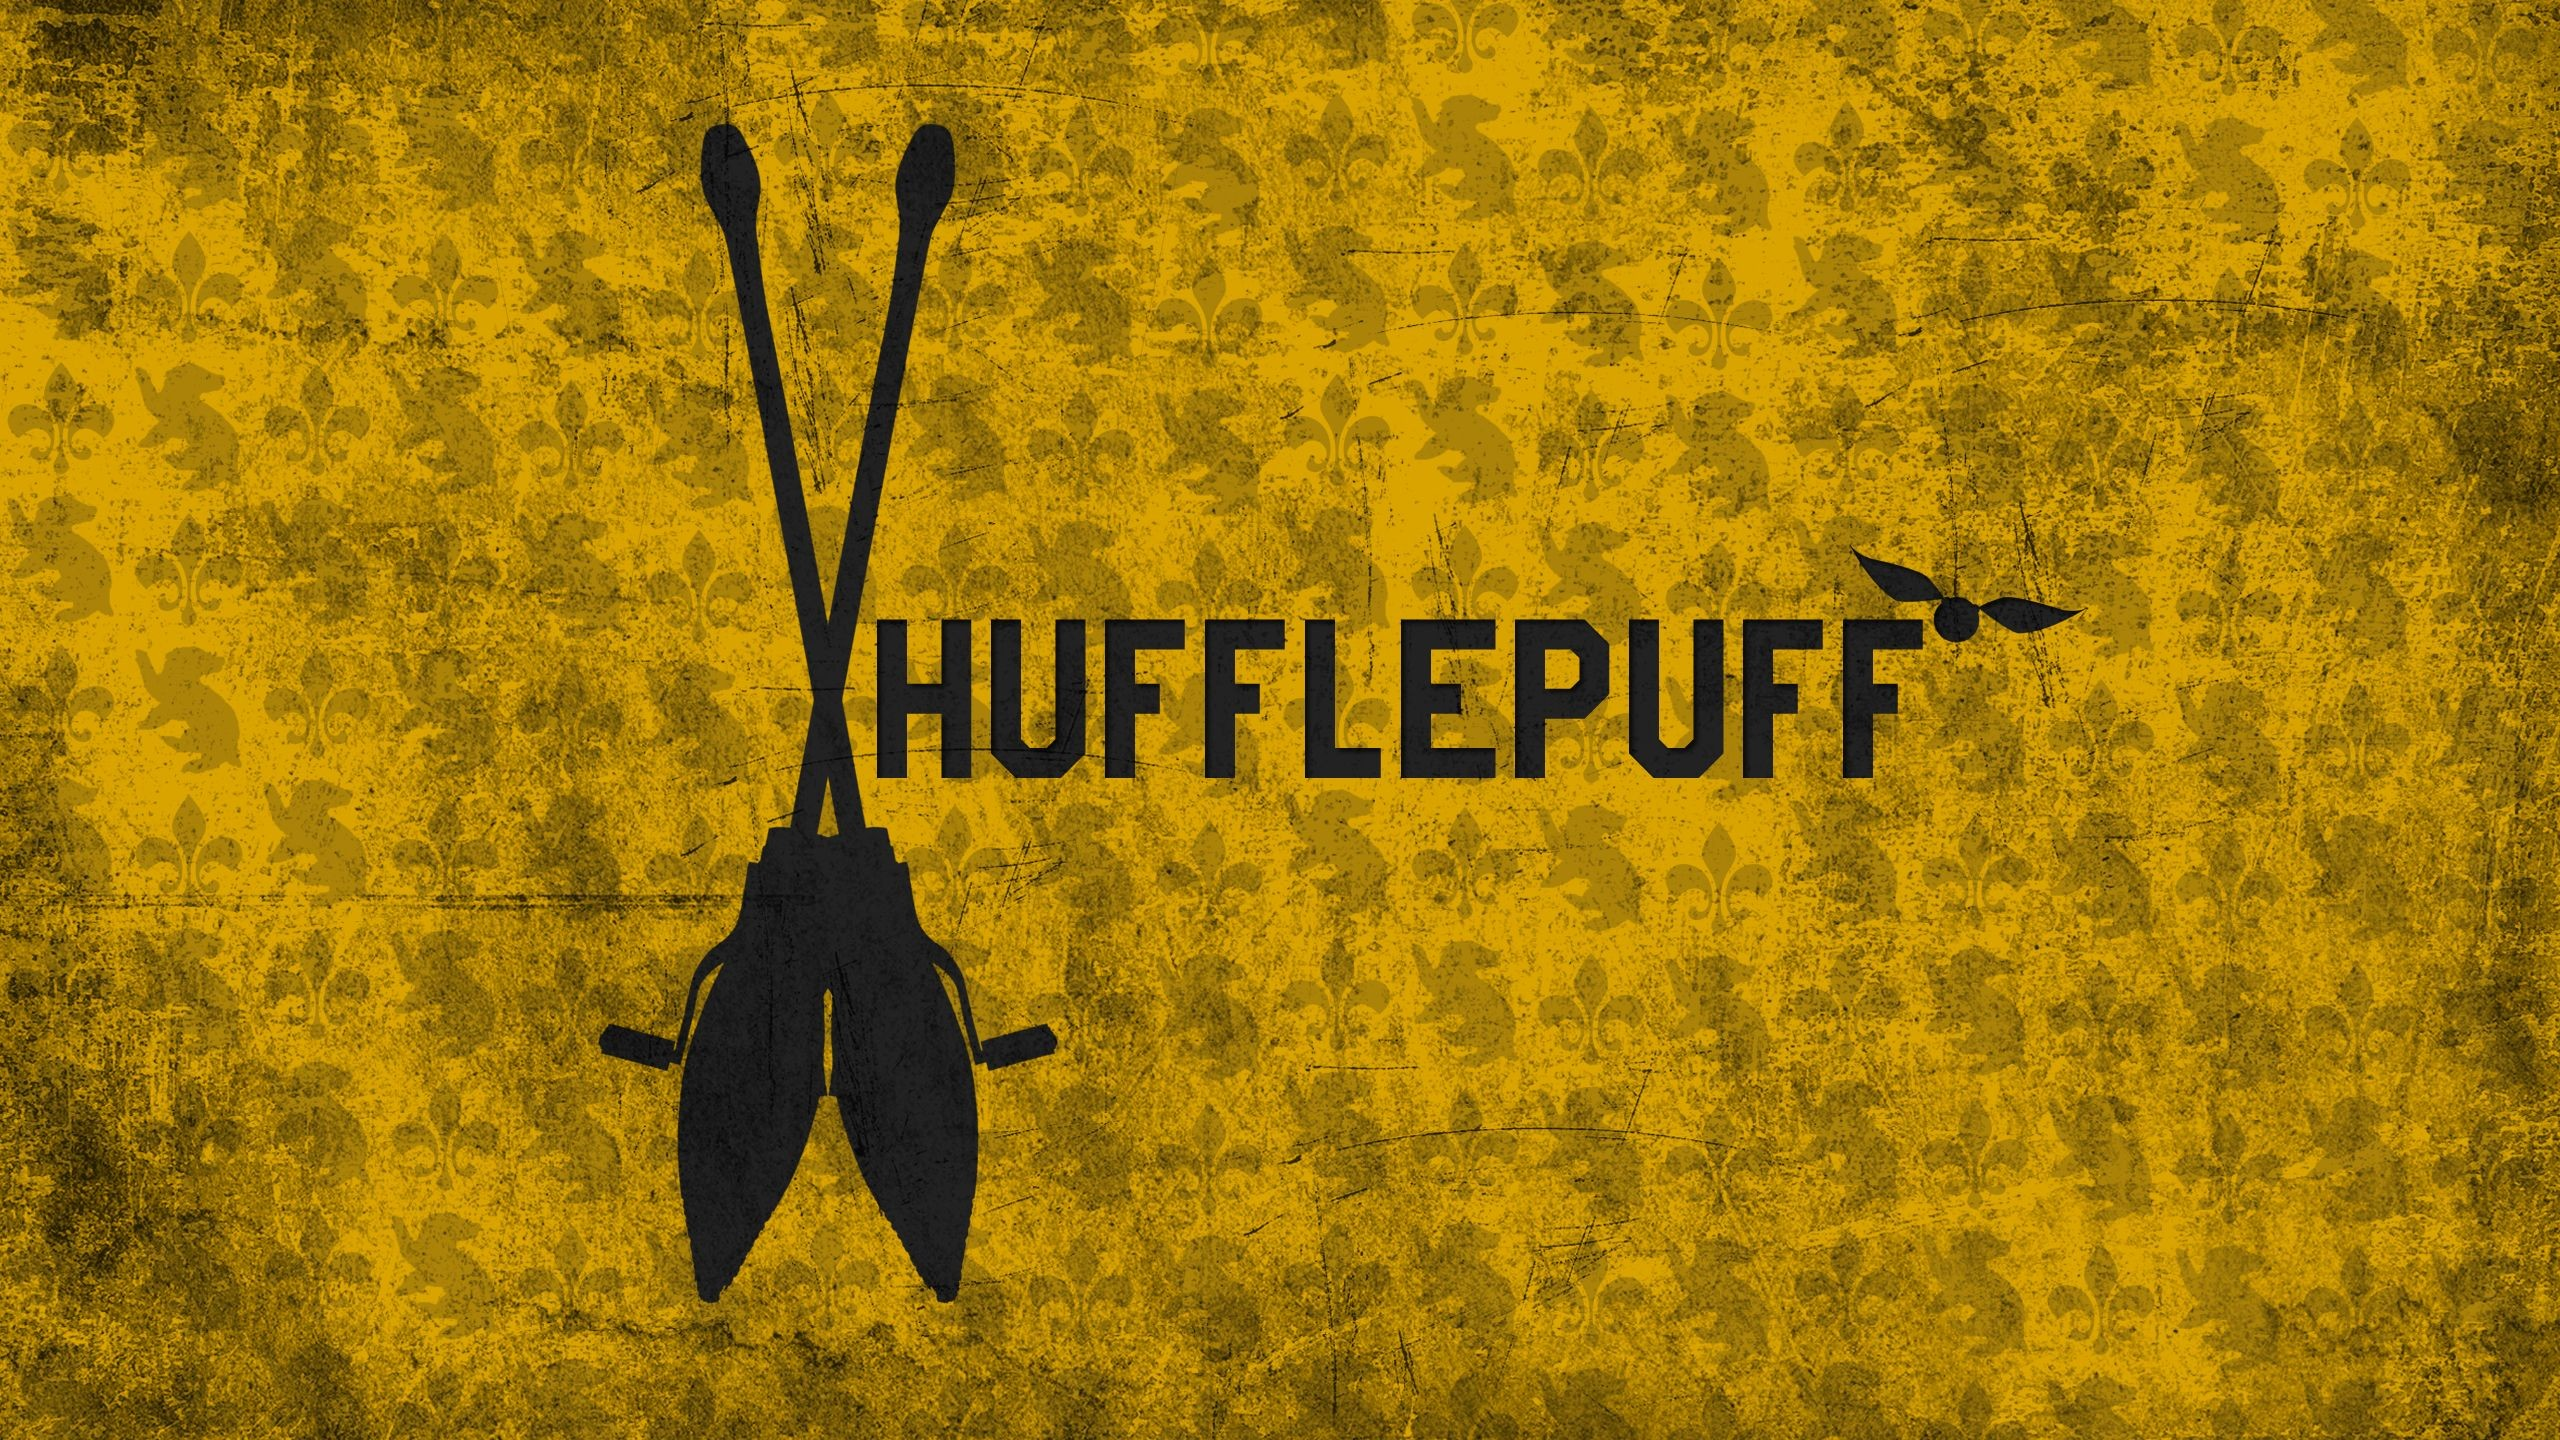 Hufflepuff Wallpapers 66 Pictures